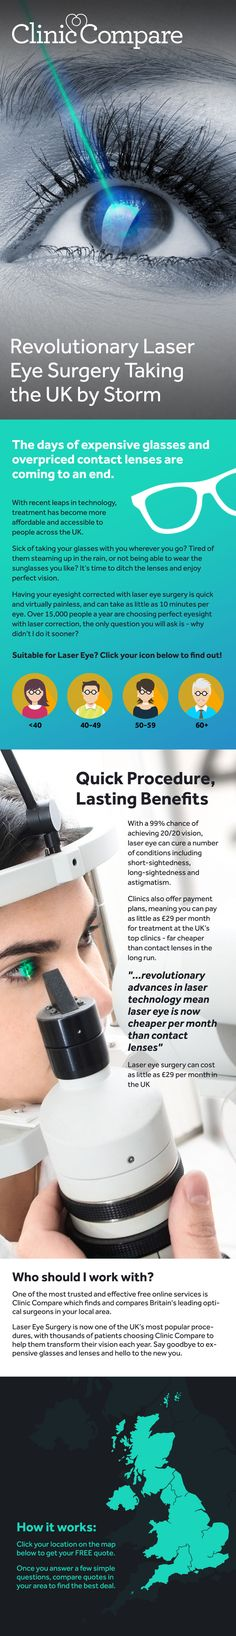 Revolutionary laser eye surgery is taking the UK by storm. The days of expensive glasses and overpriced contact lenses are coming to an end. With recent leaps in technology, treatment has become more affordable and accessible to people across the UK. Find out more.